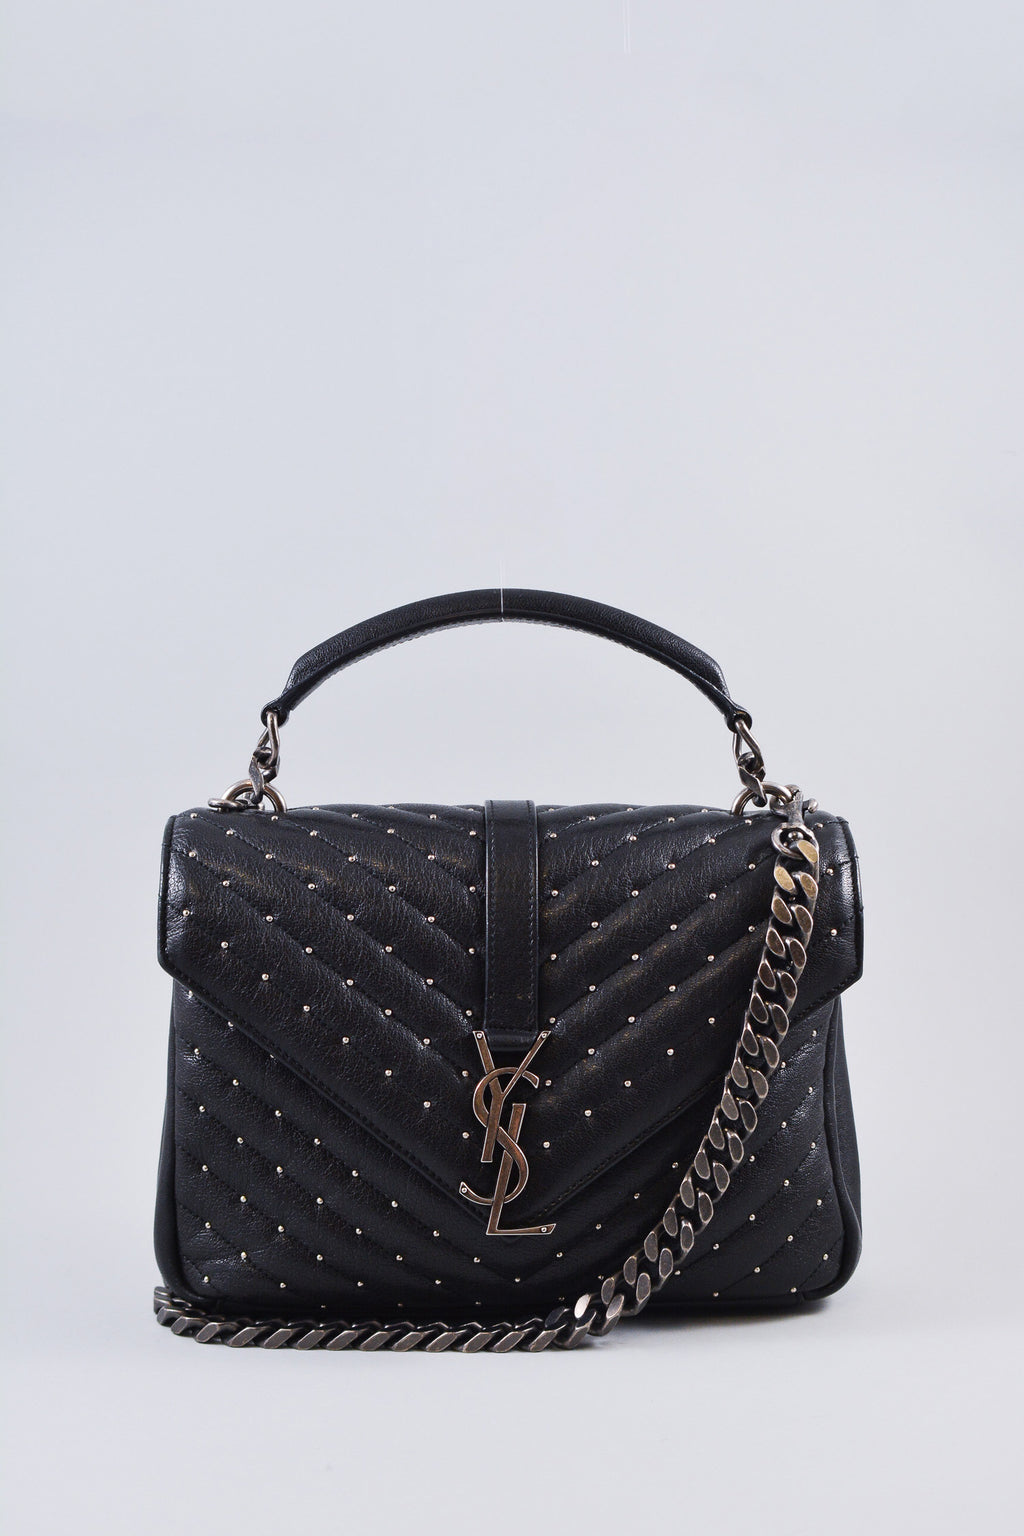 Saint Laurent Black StuddedMedium College Bag